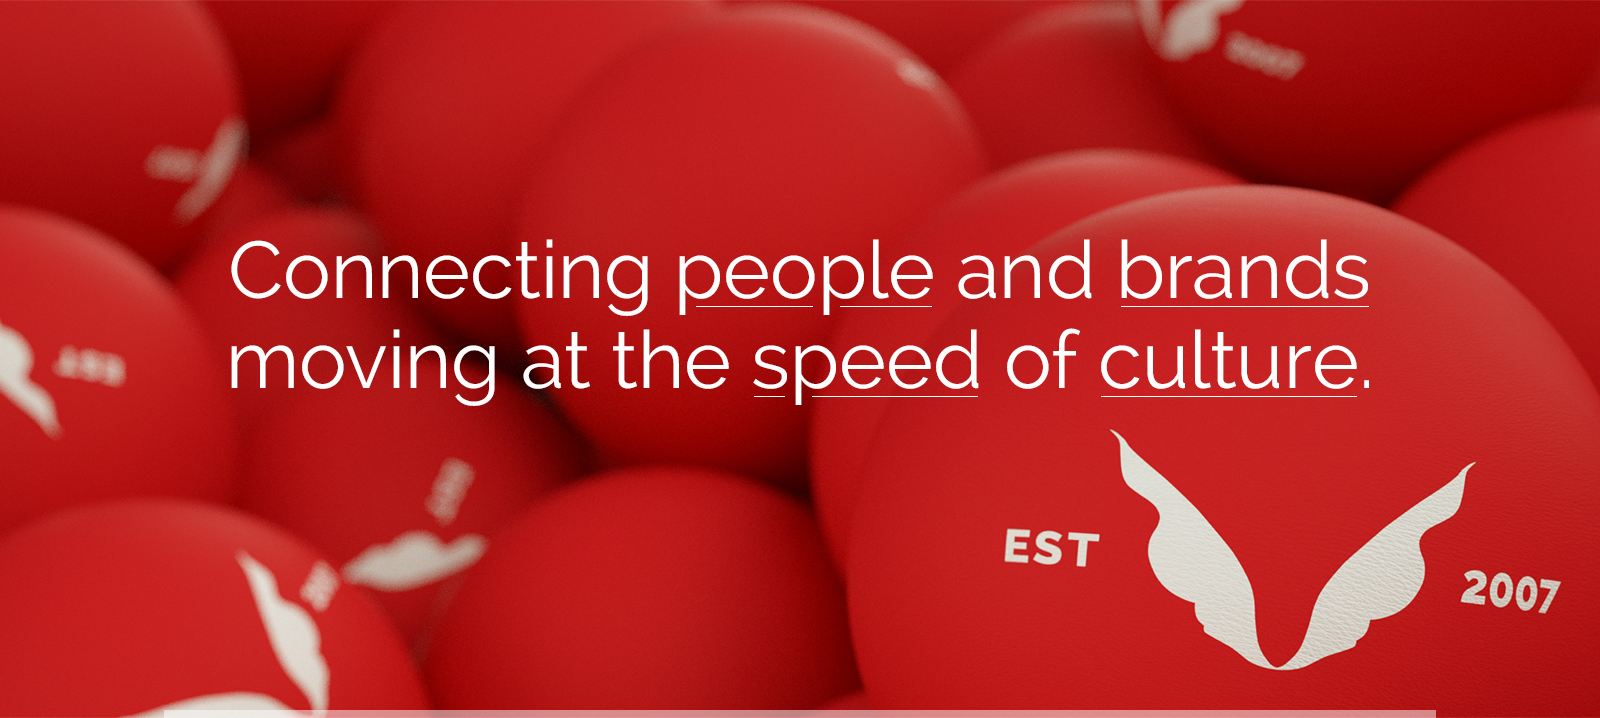 Connecting people and brands moving at the speed of culture.